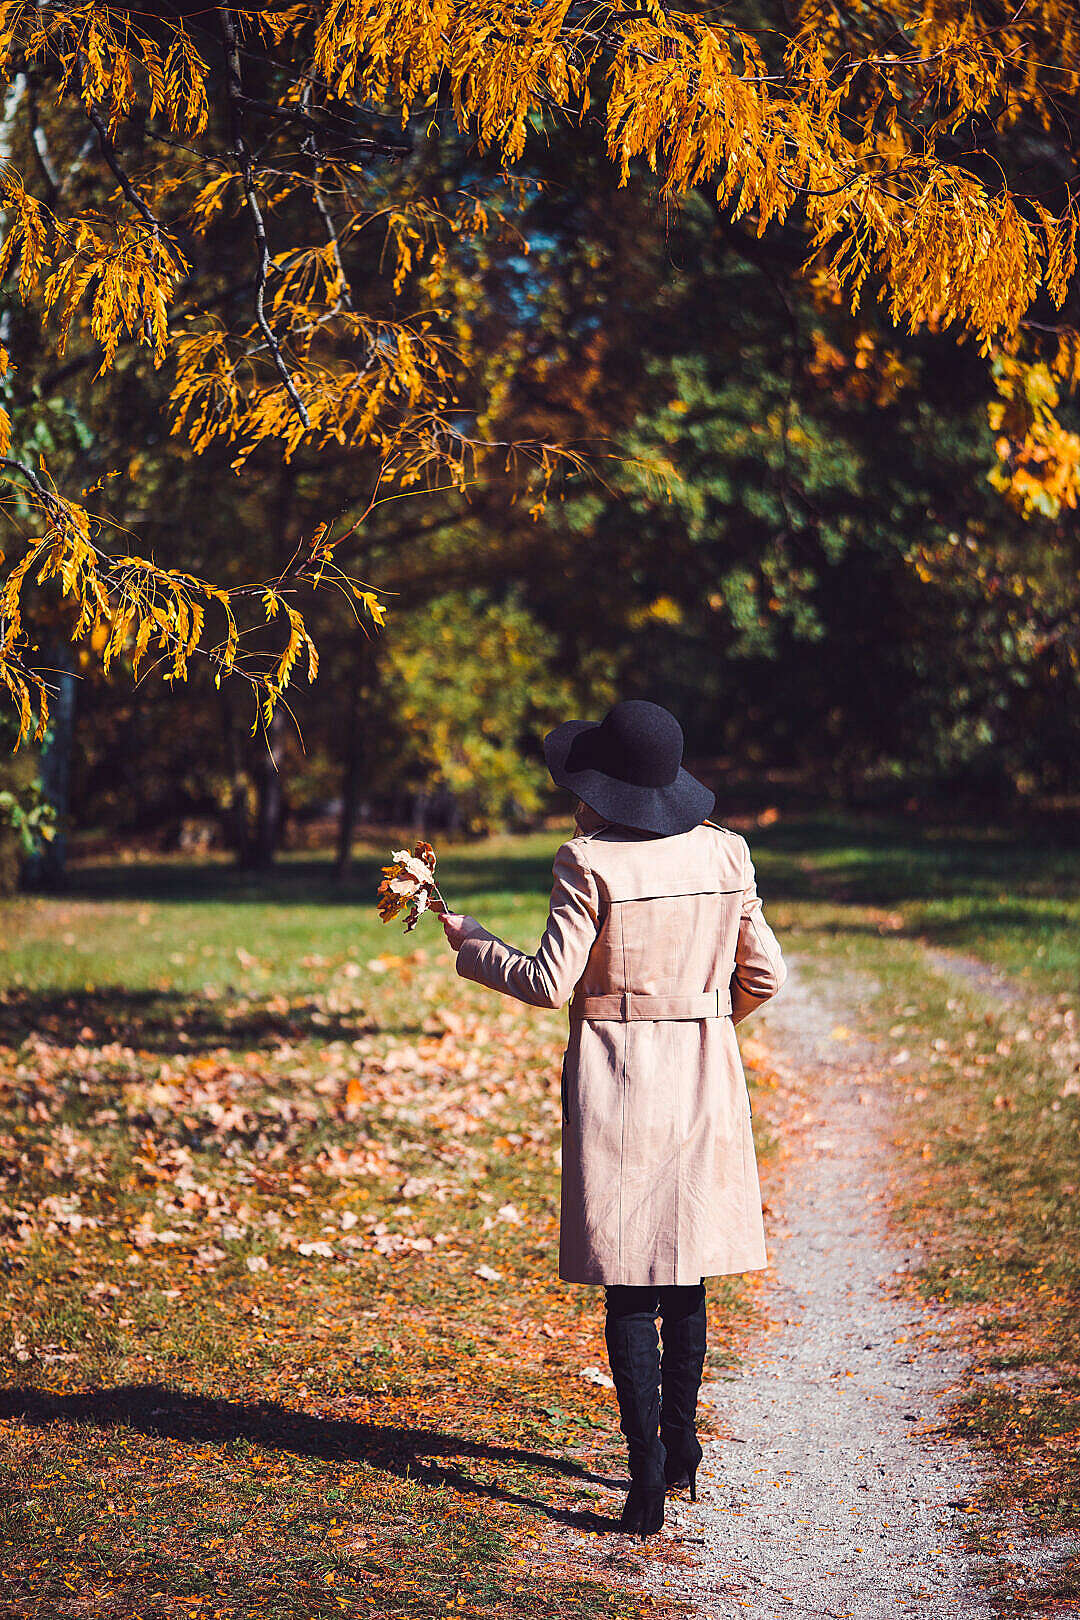 Download Woman in a Park Holding Leaves on a Sunny Autumn Day FREE Stock Photo